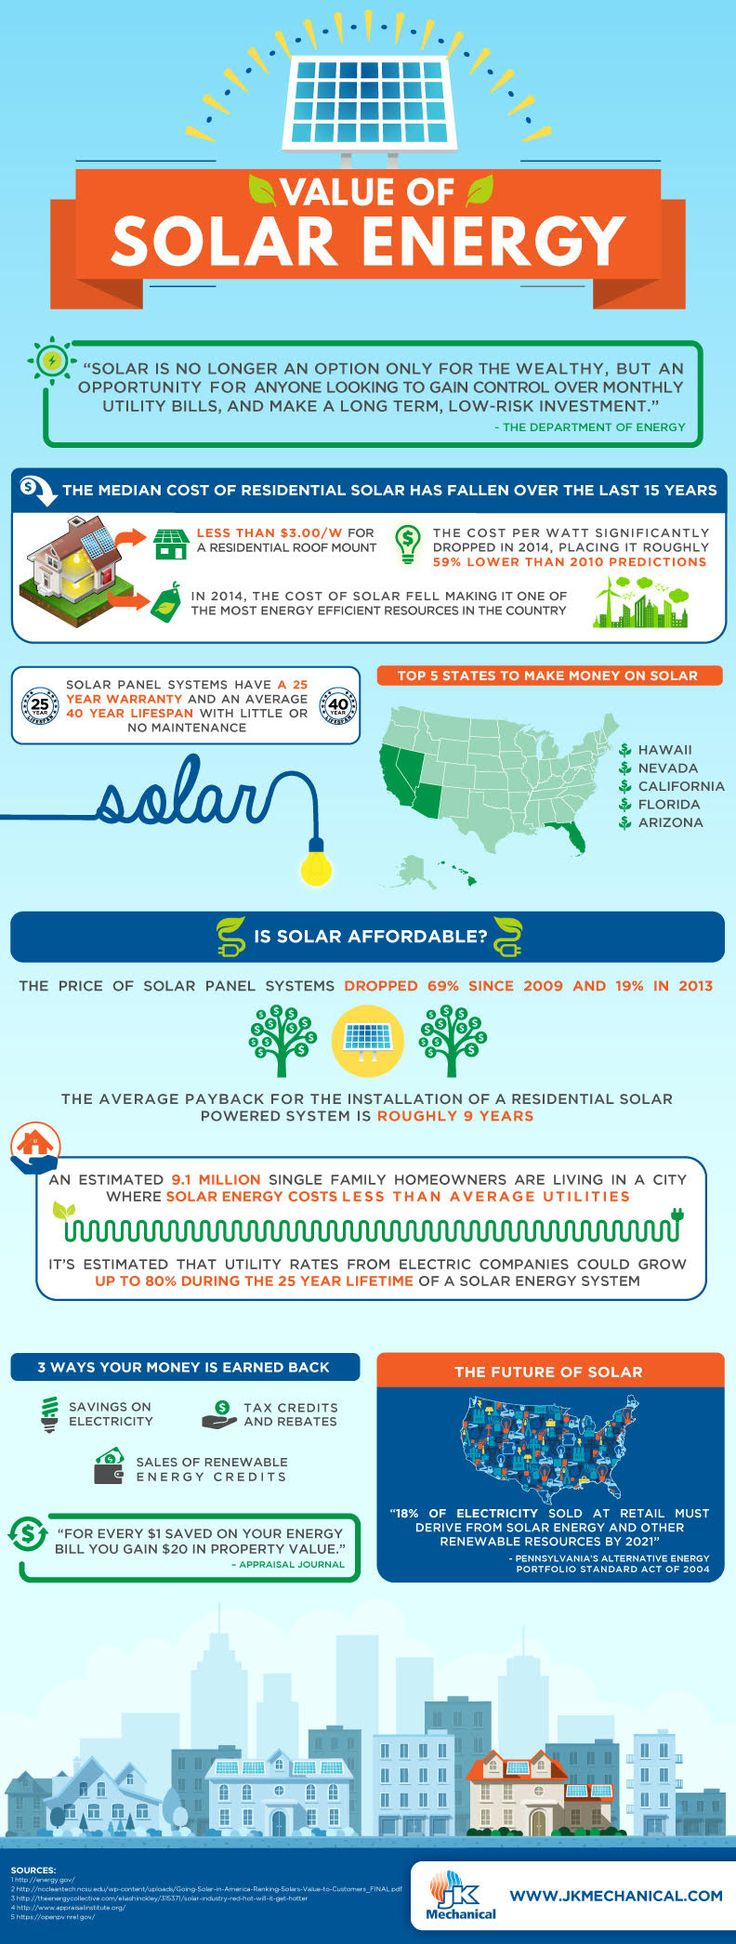 Best 25 solar energy facts ideas on pinterest wind for Energy conservation facts